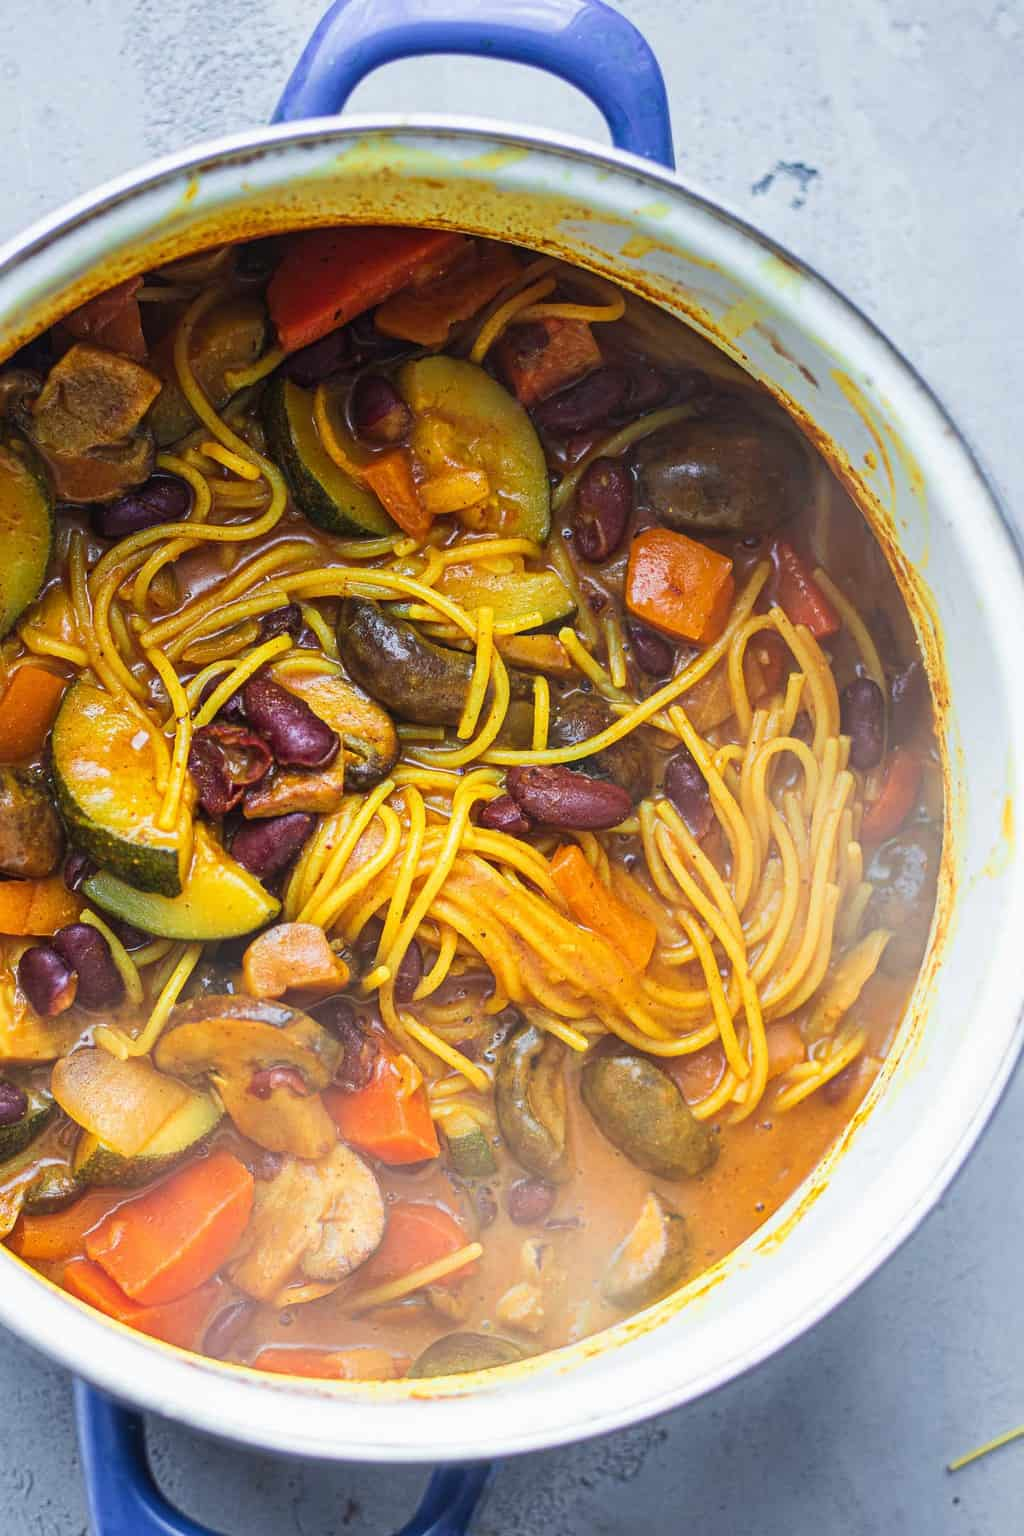 Spaghetti with vegetables in a saucepan